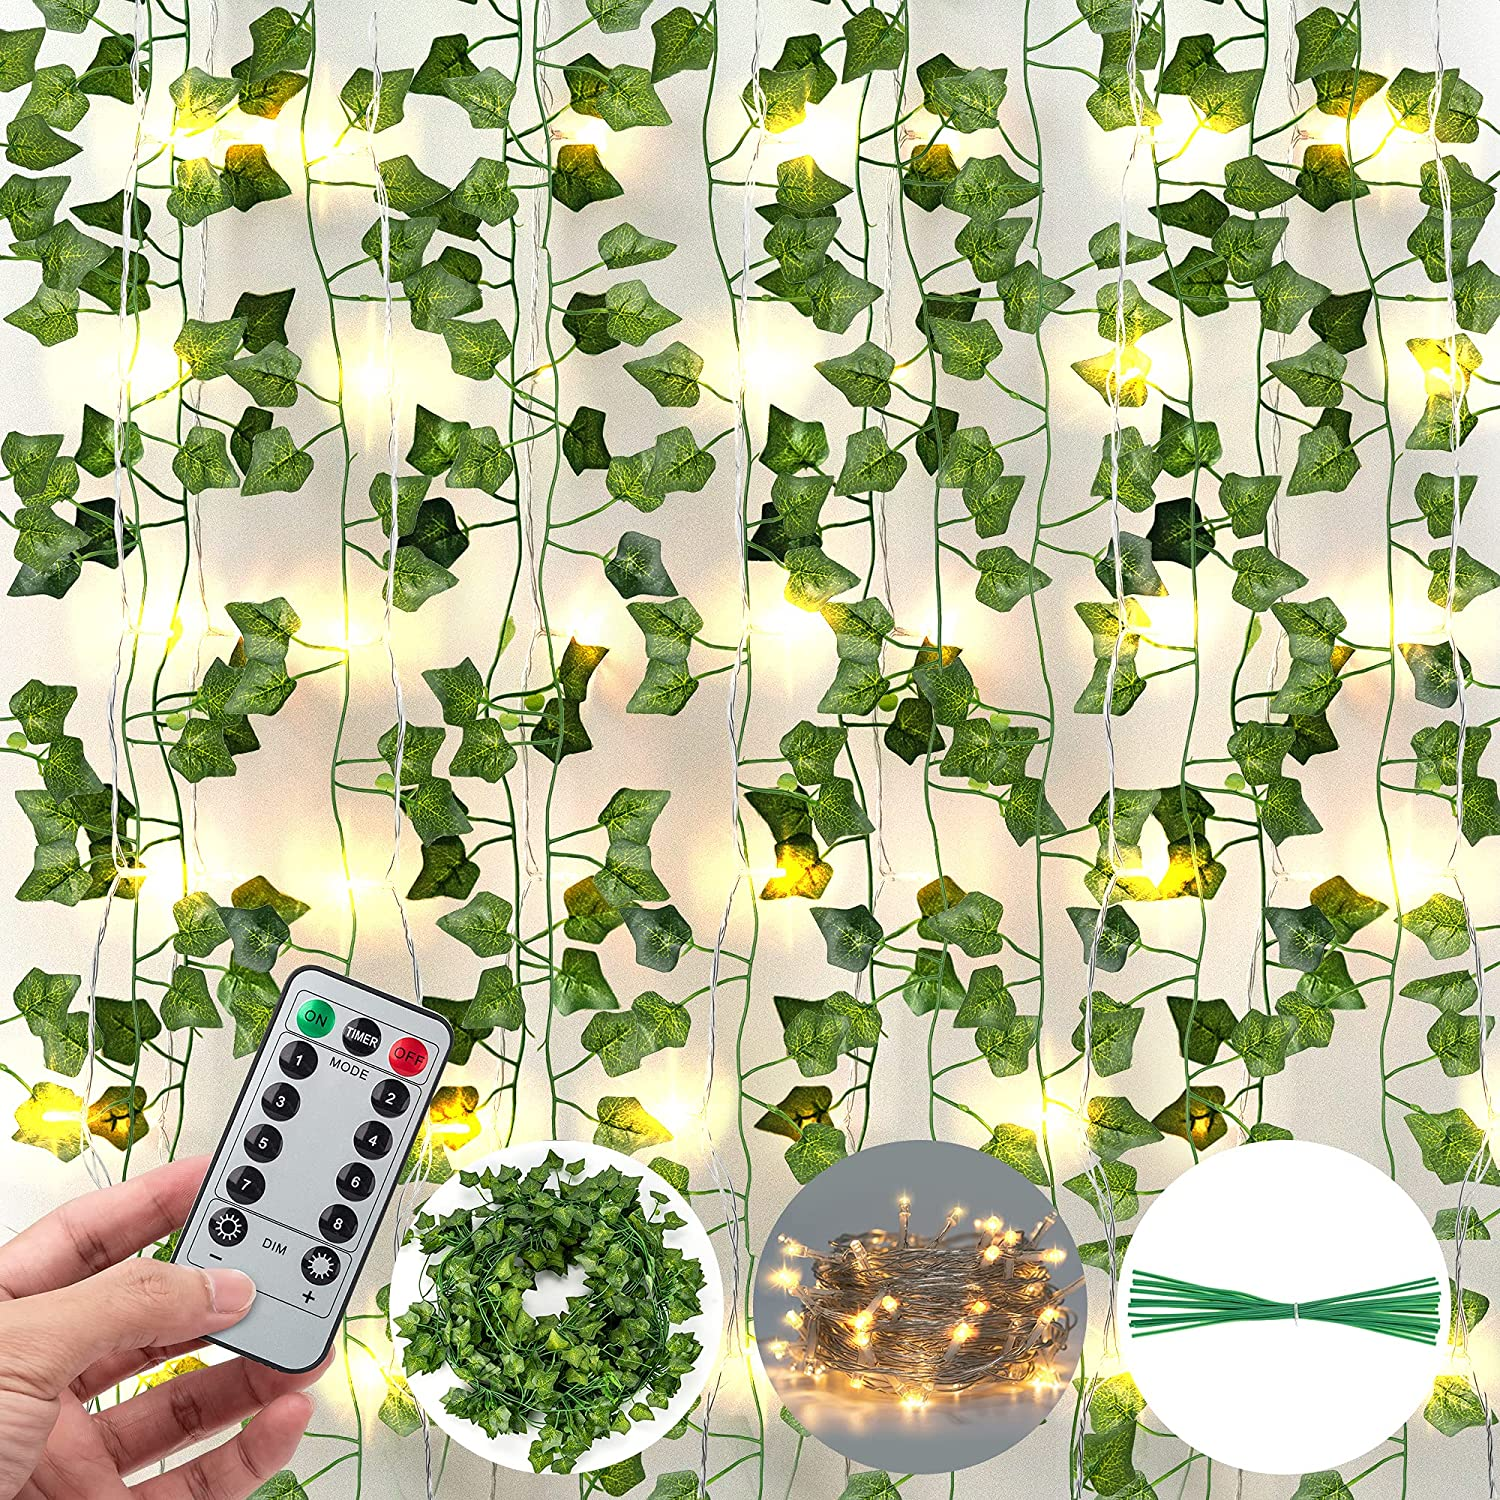 84 Ft 12 Pcs Artificial Ivy Garland Fake Vines with 80 LED String Light and Remote Control JACKYLED Hanging Garland for Holiday Home Kitchen Garden Office Wedding Party Wall Decor